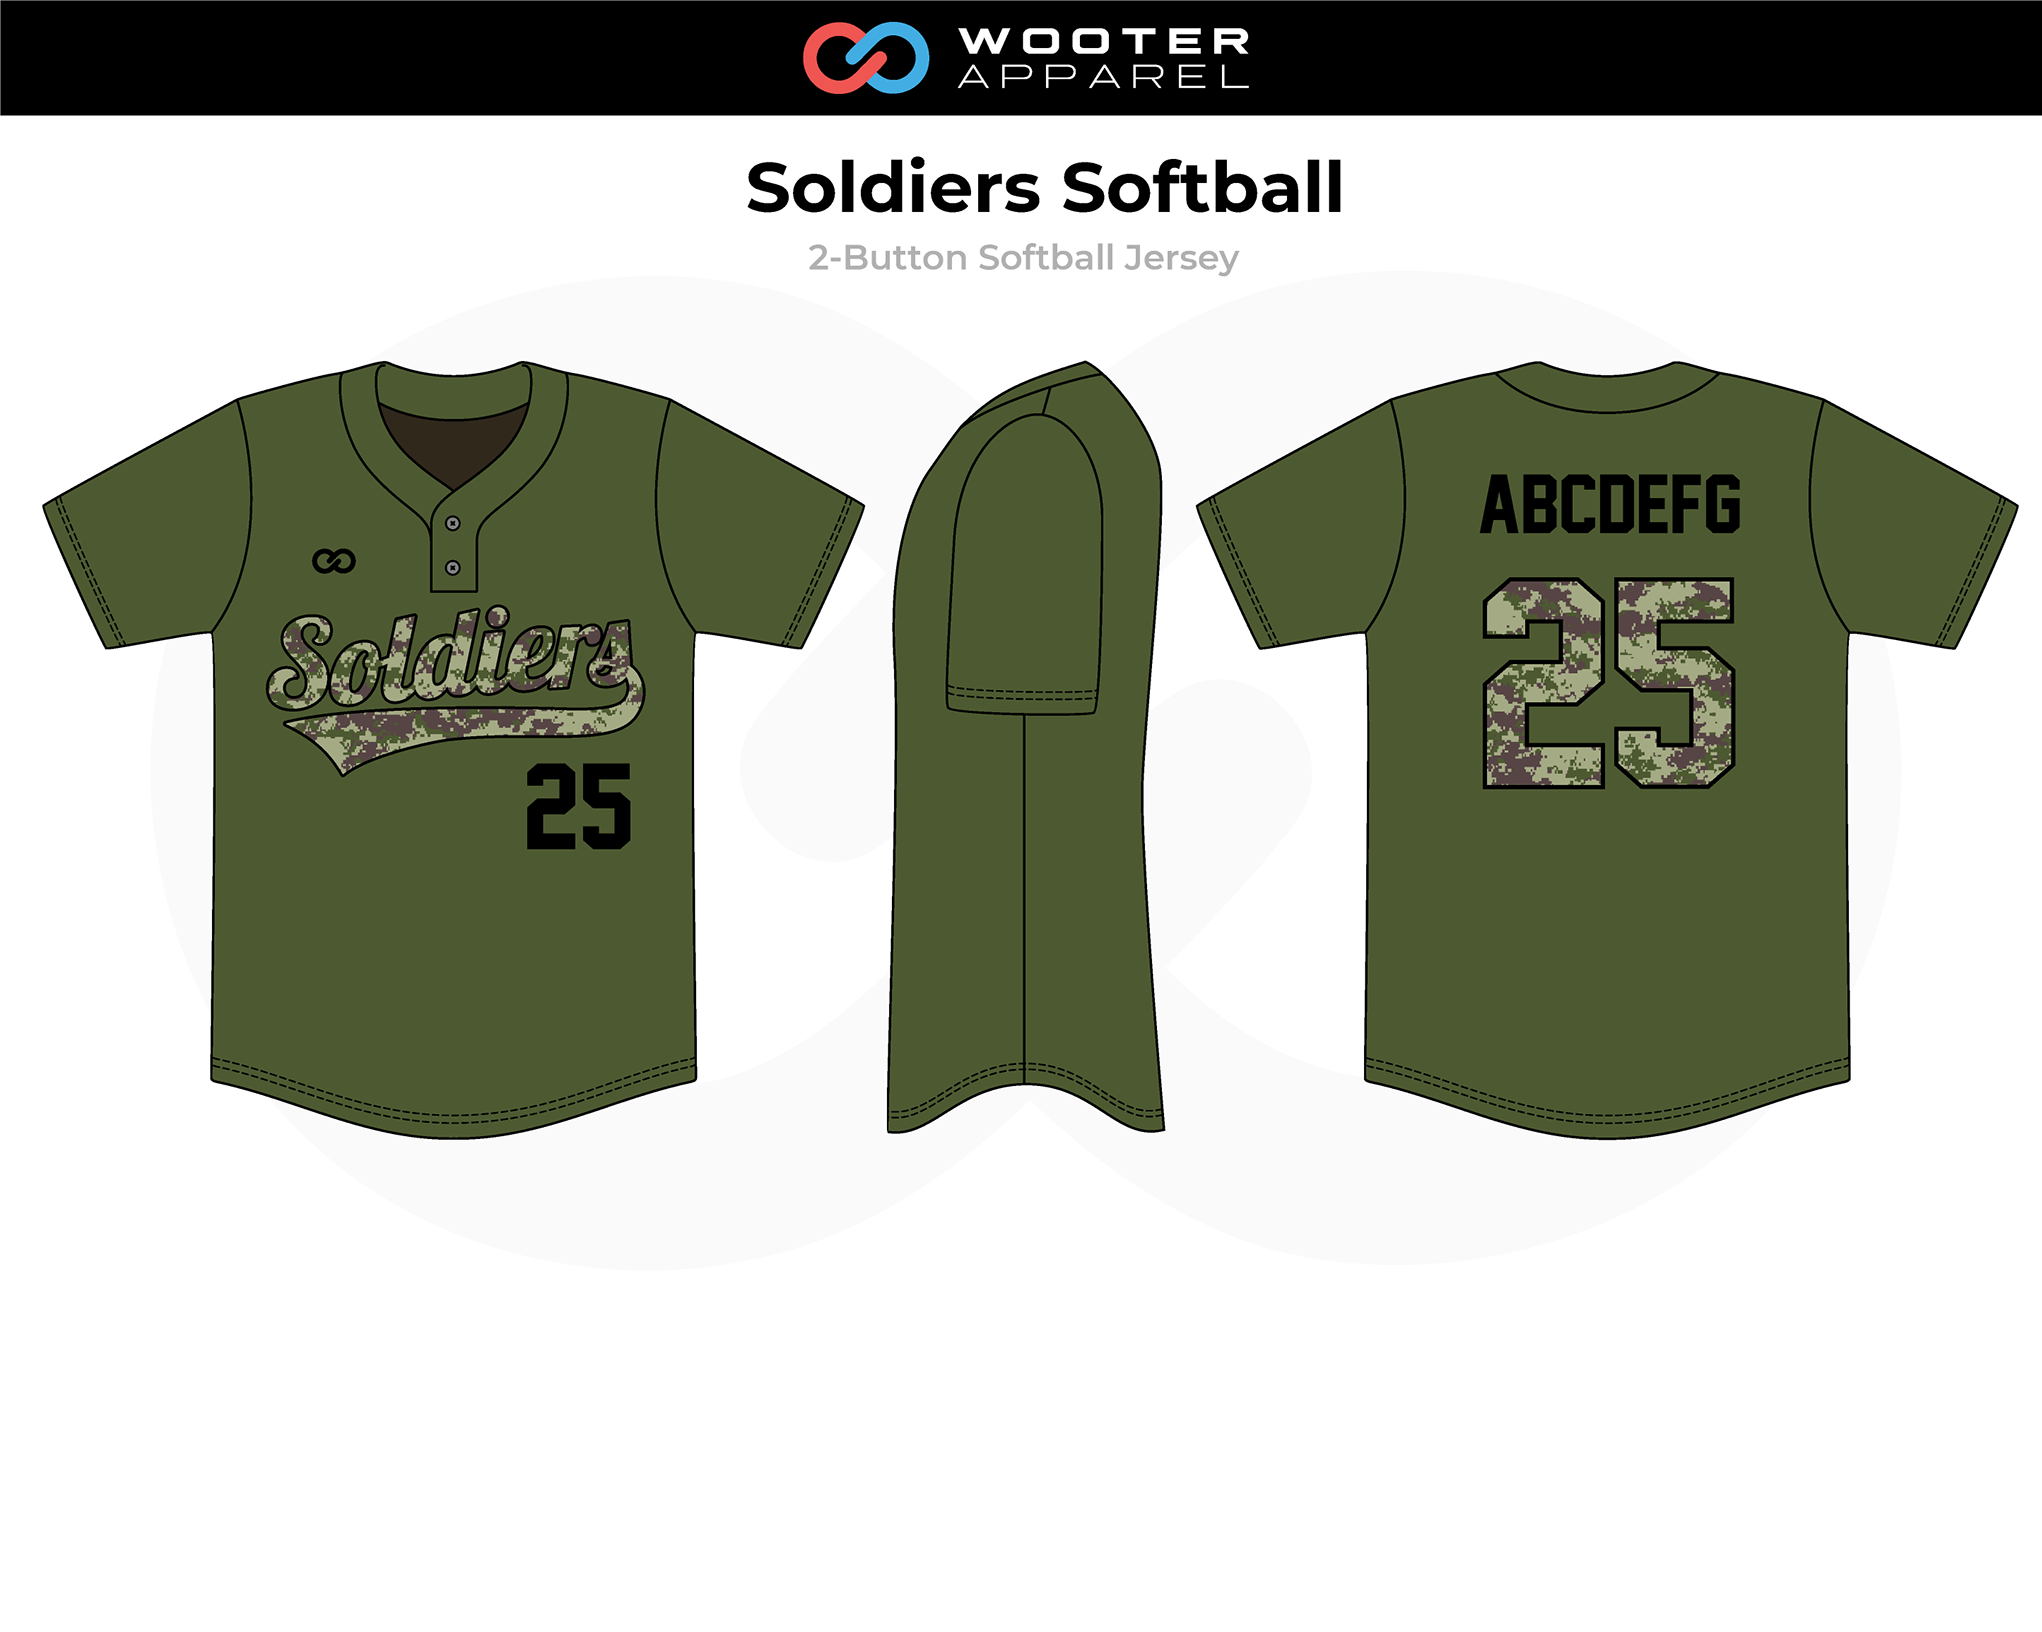 2018-06-22 Soldiers Softball 2-Button Softball Jersey (Army Green).png